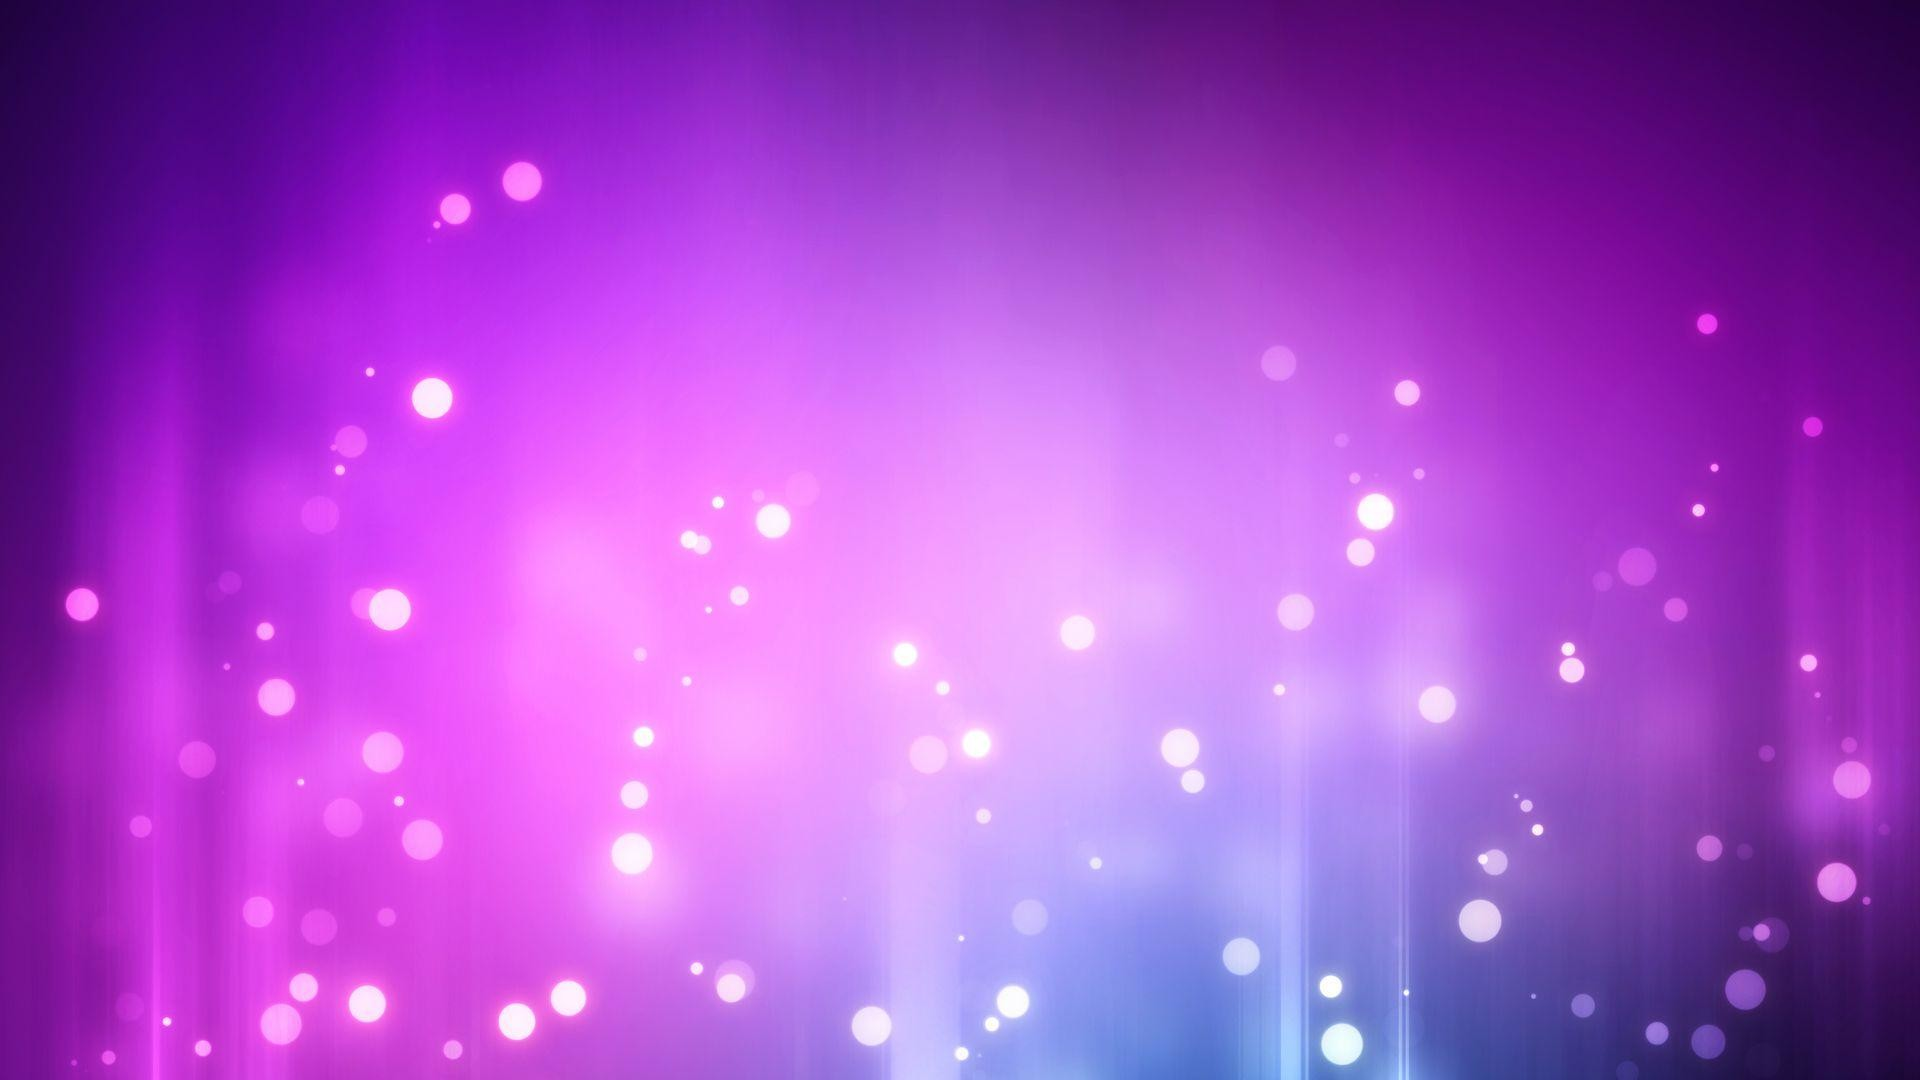 Pink Purple And Blue Backgrounds 51 Images